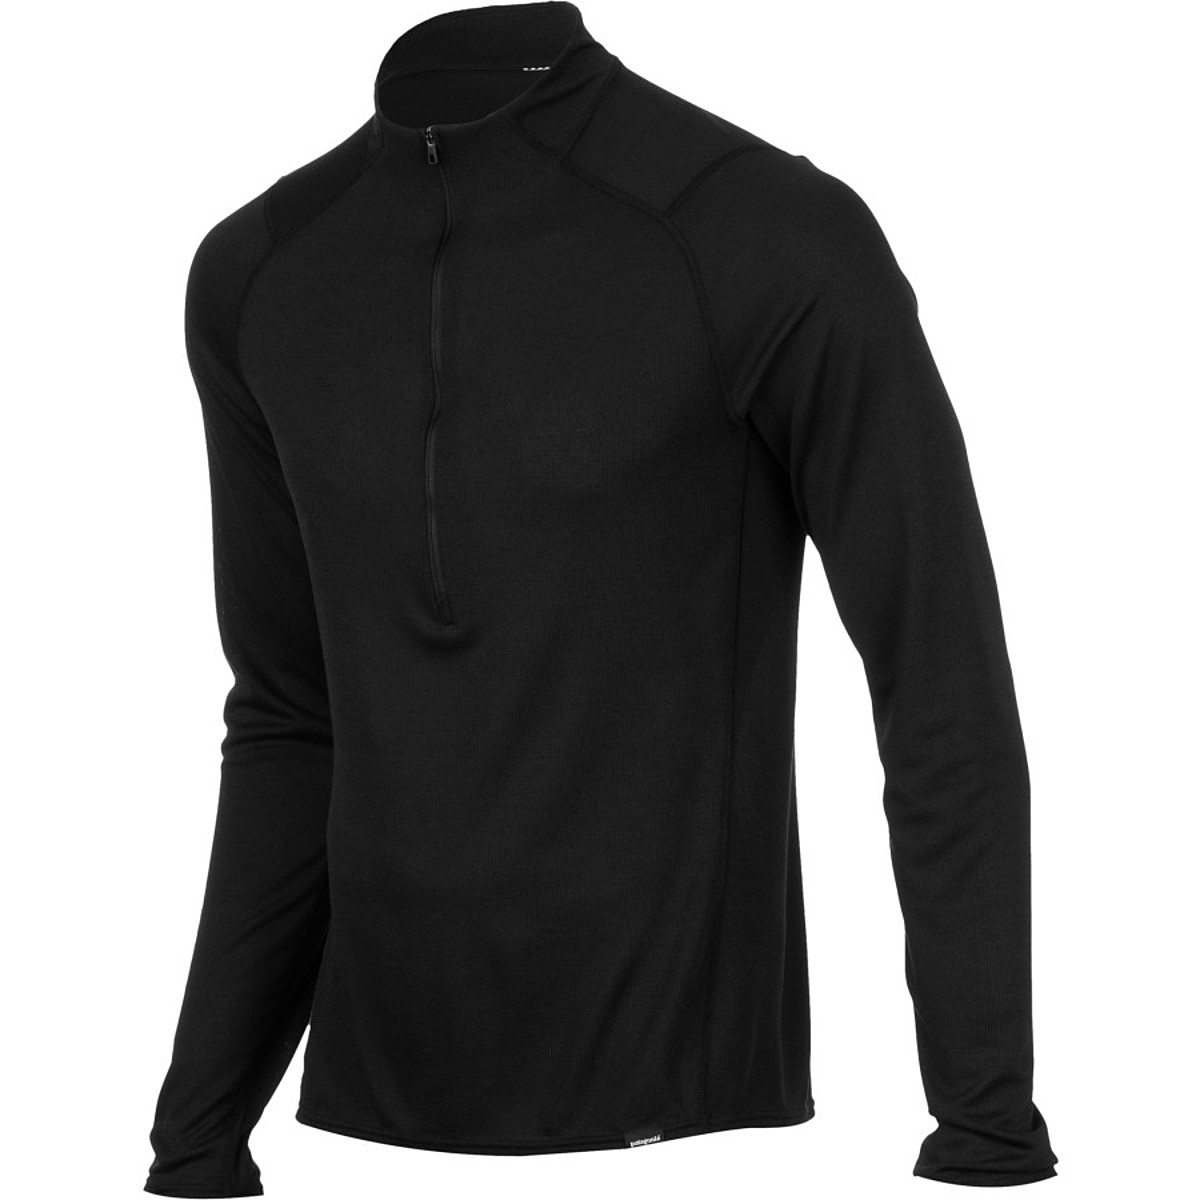 photo: Patagonia Capilene 2 Lightweight Zip-Neck base layer top